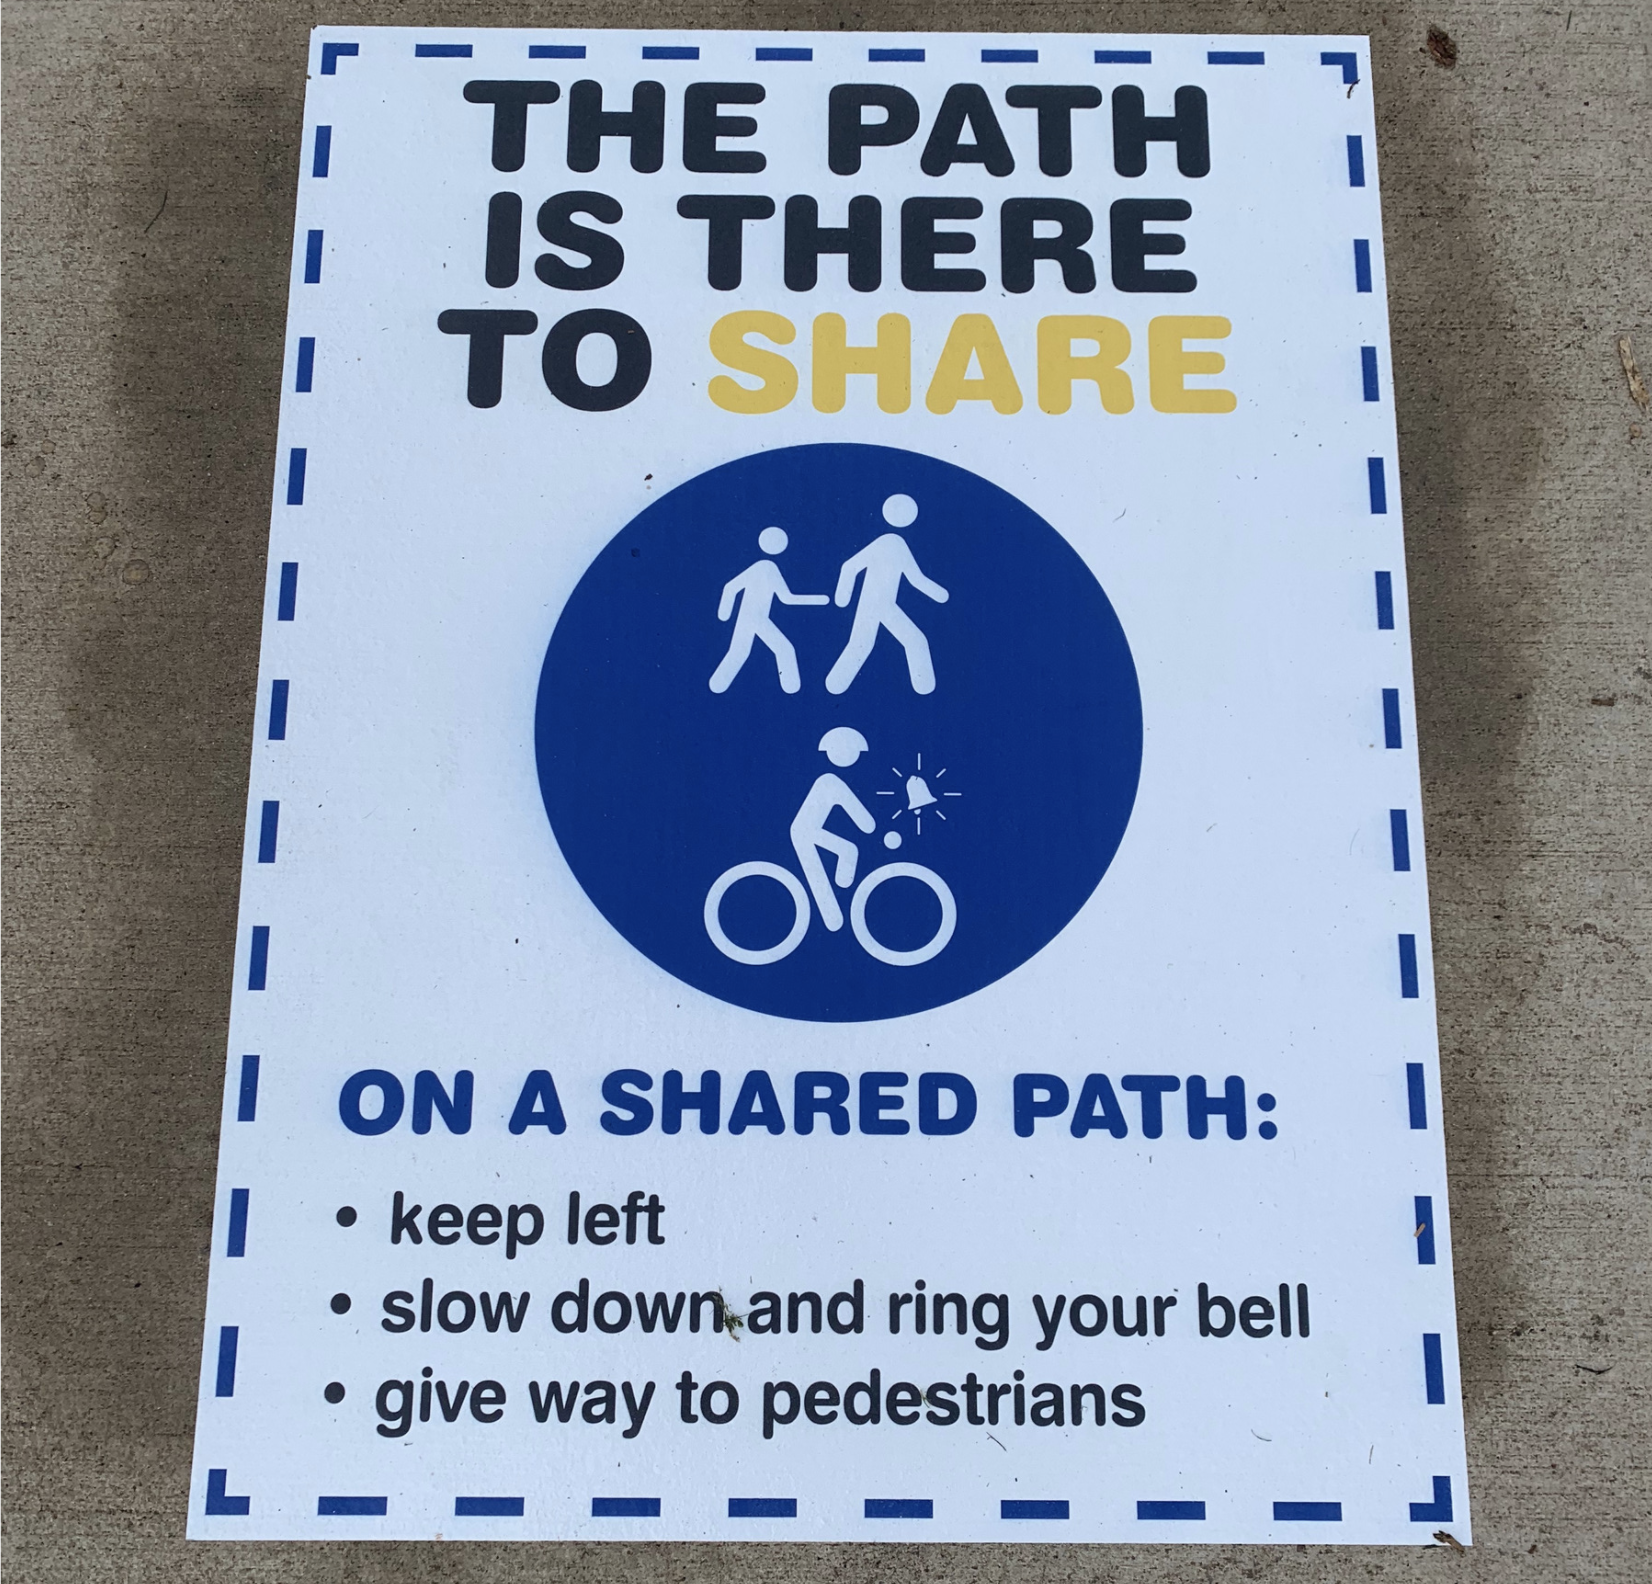 The path is there to share image